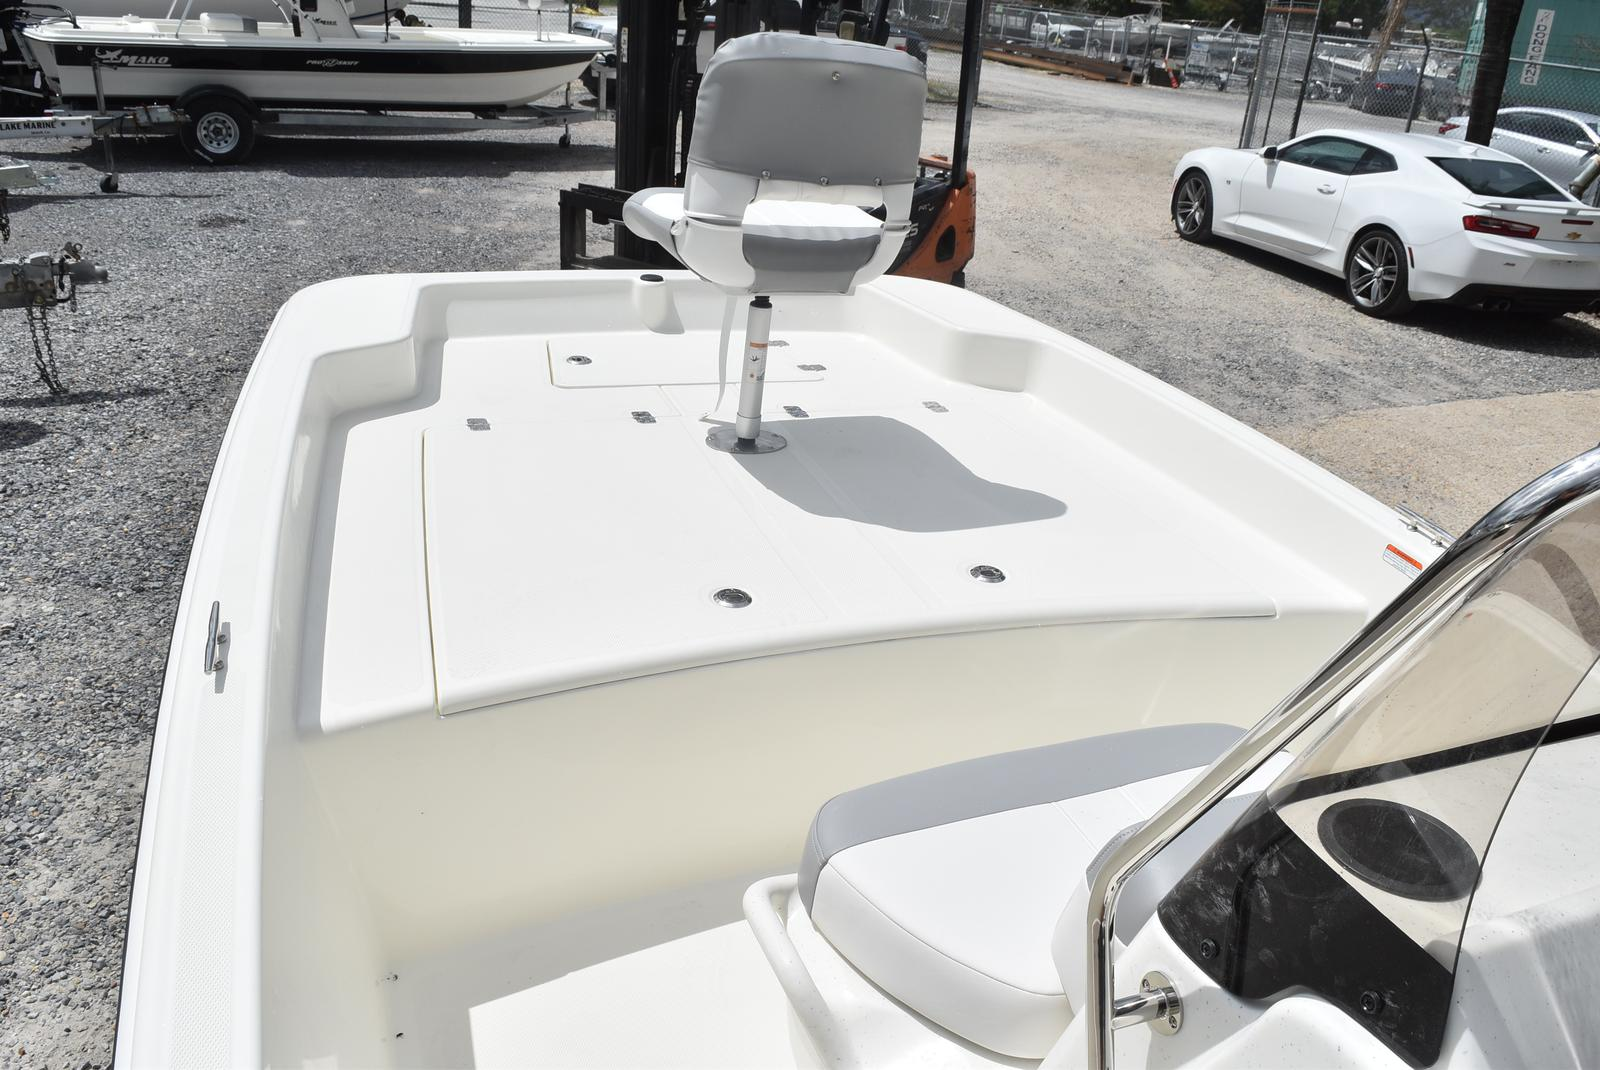 2020 Mako boat for sale, model of the boat is Pro Skiff 17, 75 ELPT & Image # 432 of 702